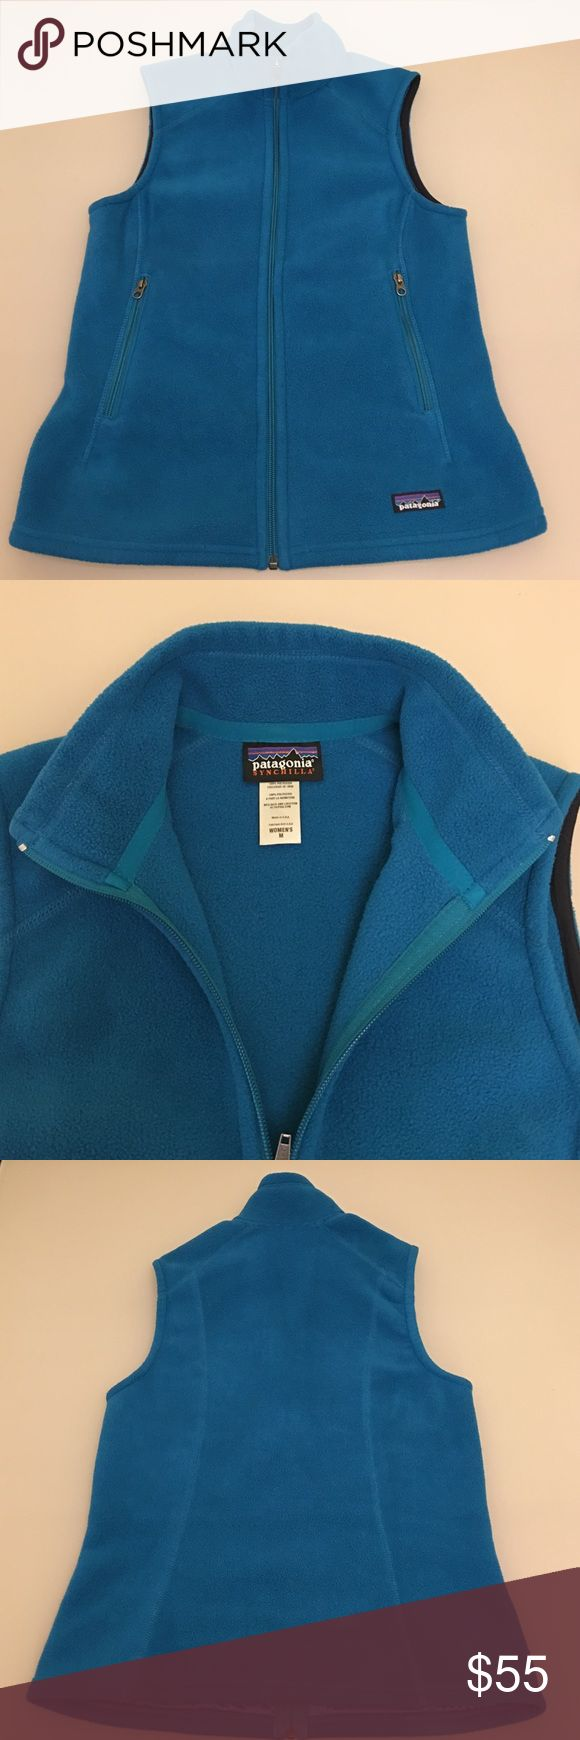 Patagonia Fleece Vest Patagonia Synchilla Fleece Vest   Made of bluesign® approved midweight polyester fleece  Full-zip vest with stand-up collar Two zippered handwarmer pockets Elasticized binding at armholes and hem Hip length In great condition! No flaws  🚫No trades 😊Thank you Patagonia Jackets & Coats Vests